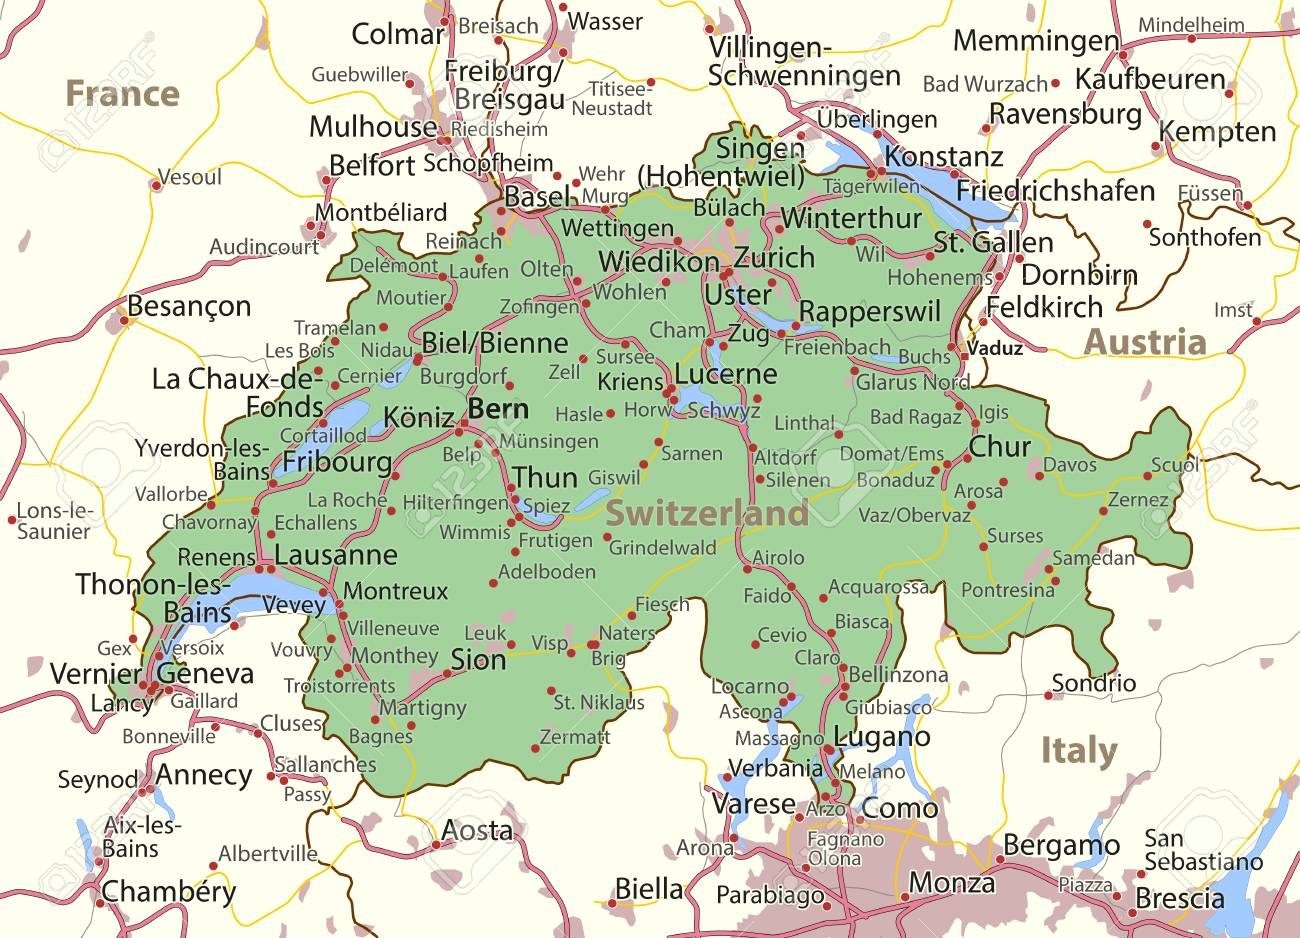 Map Of Switzerland. Shows Country Borders, Urban Areas, Place ...